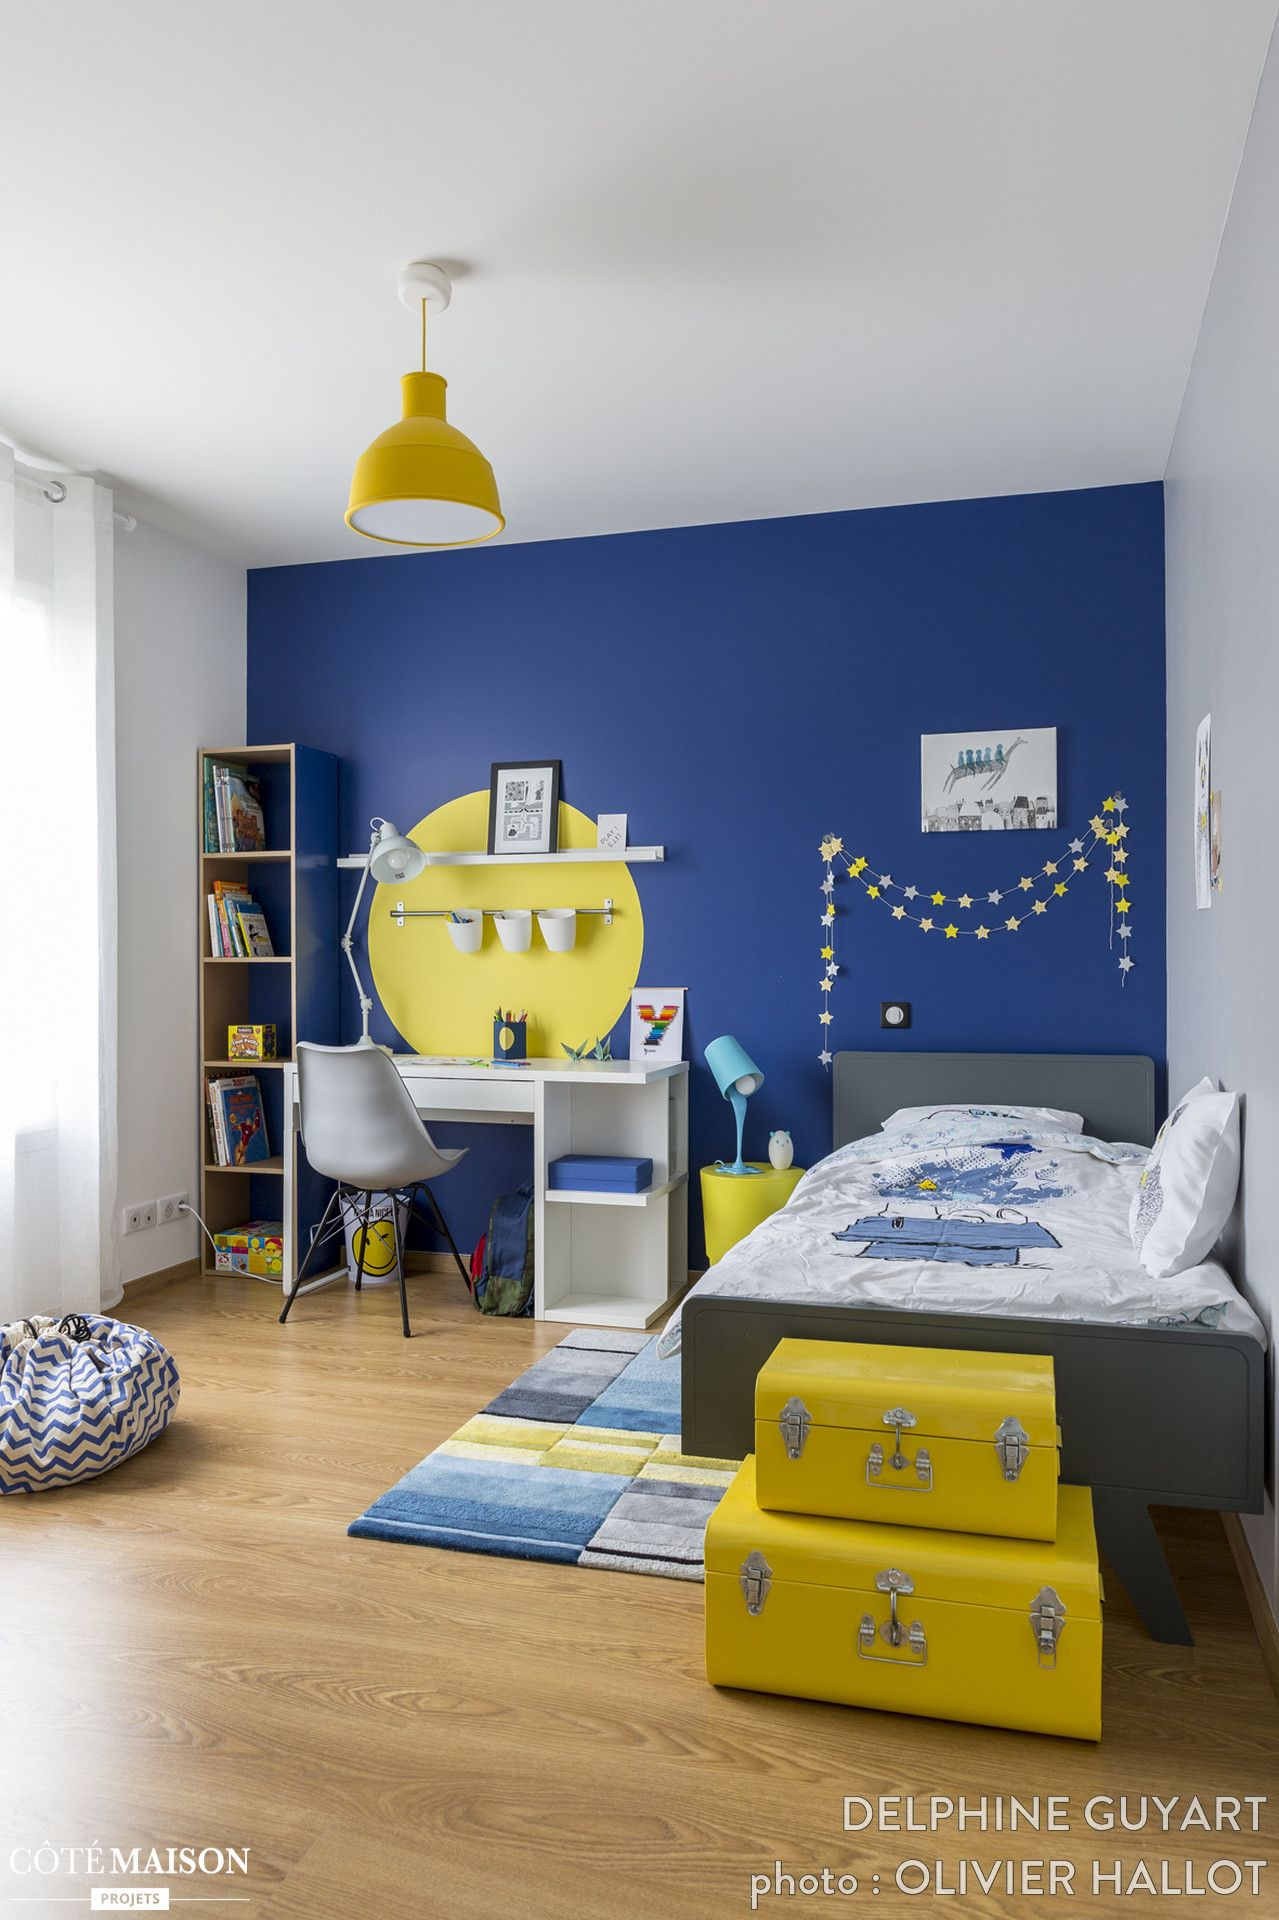 Best Idee Couleur Chambre Garcon Photos - House Design - marcomilone.com